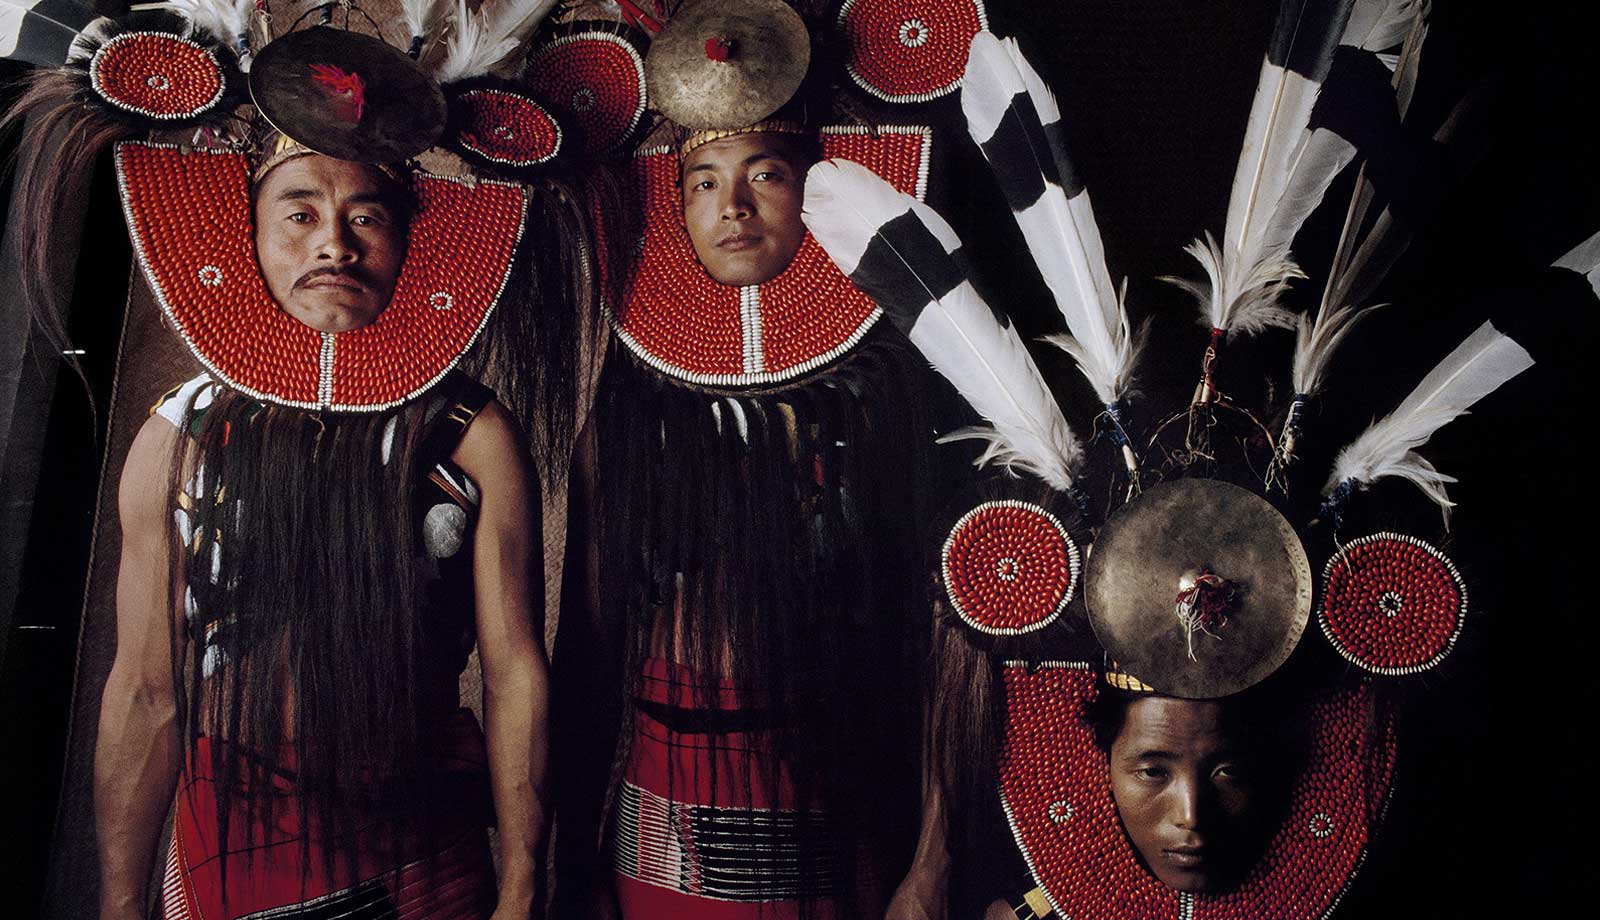 Naga People